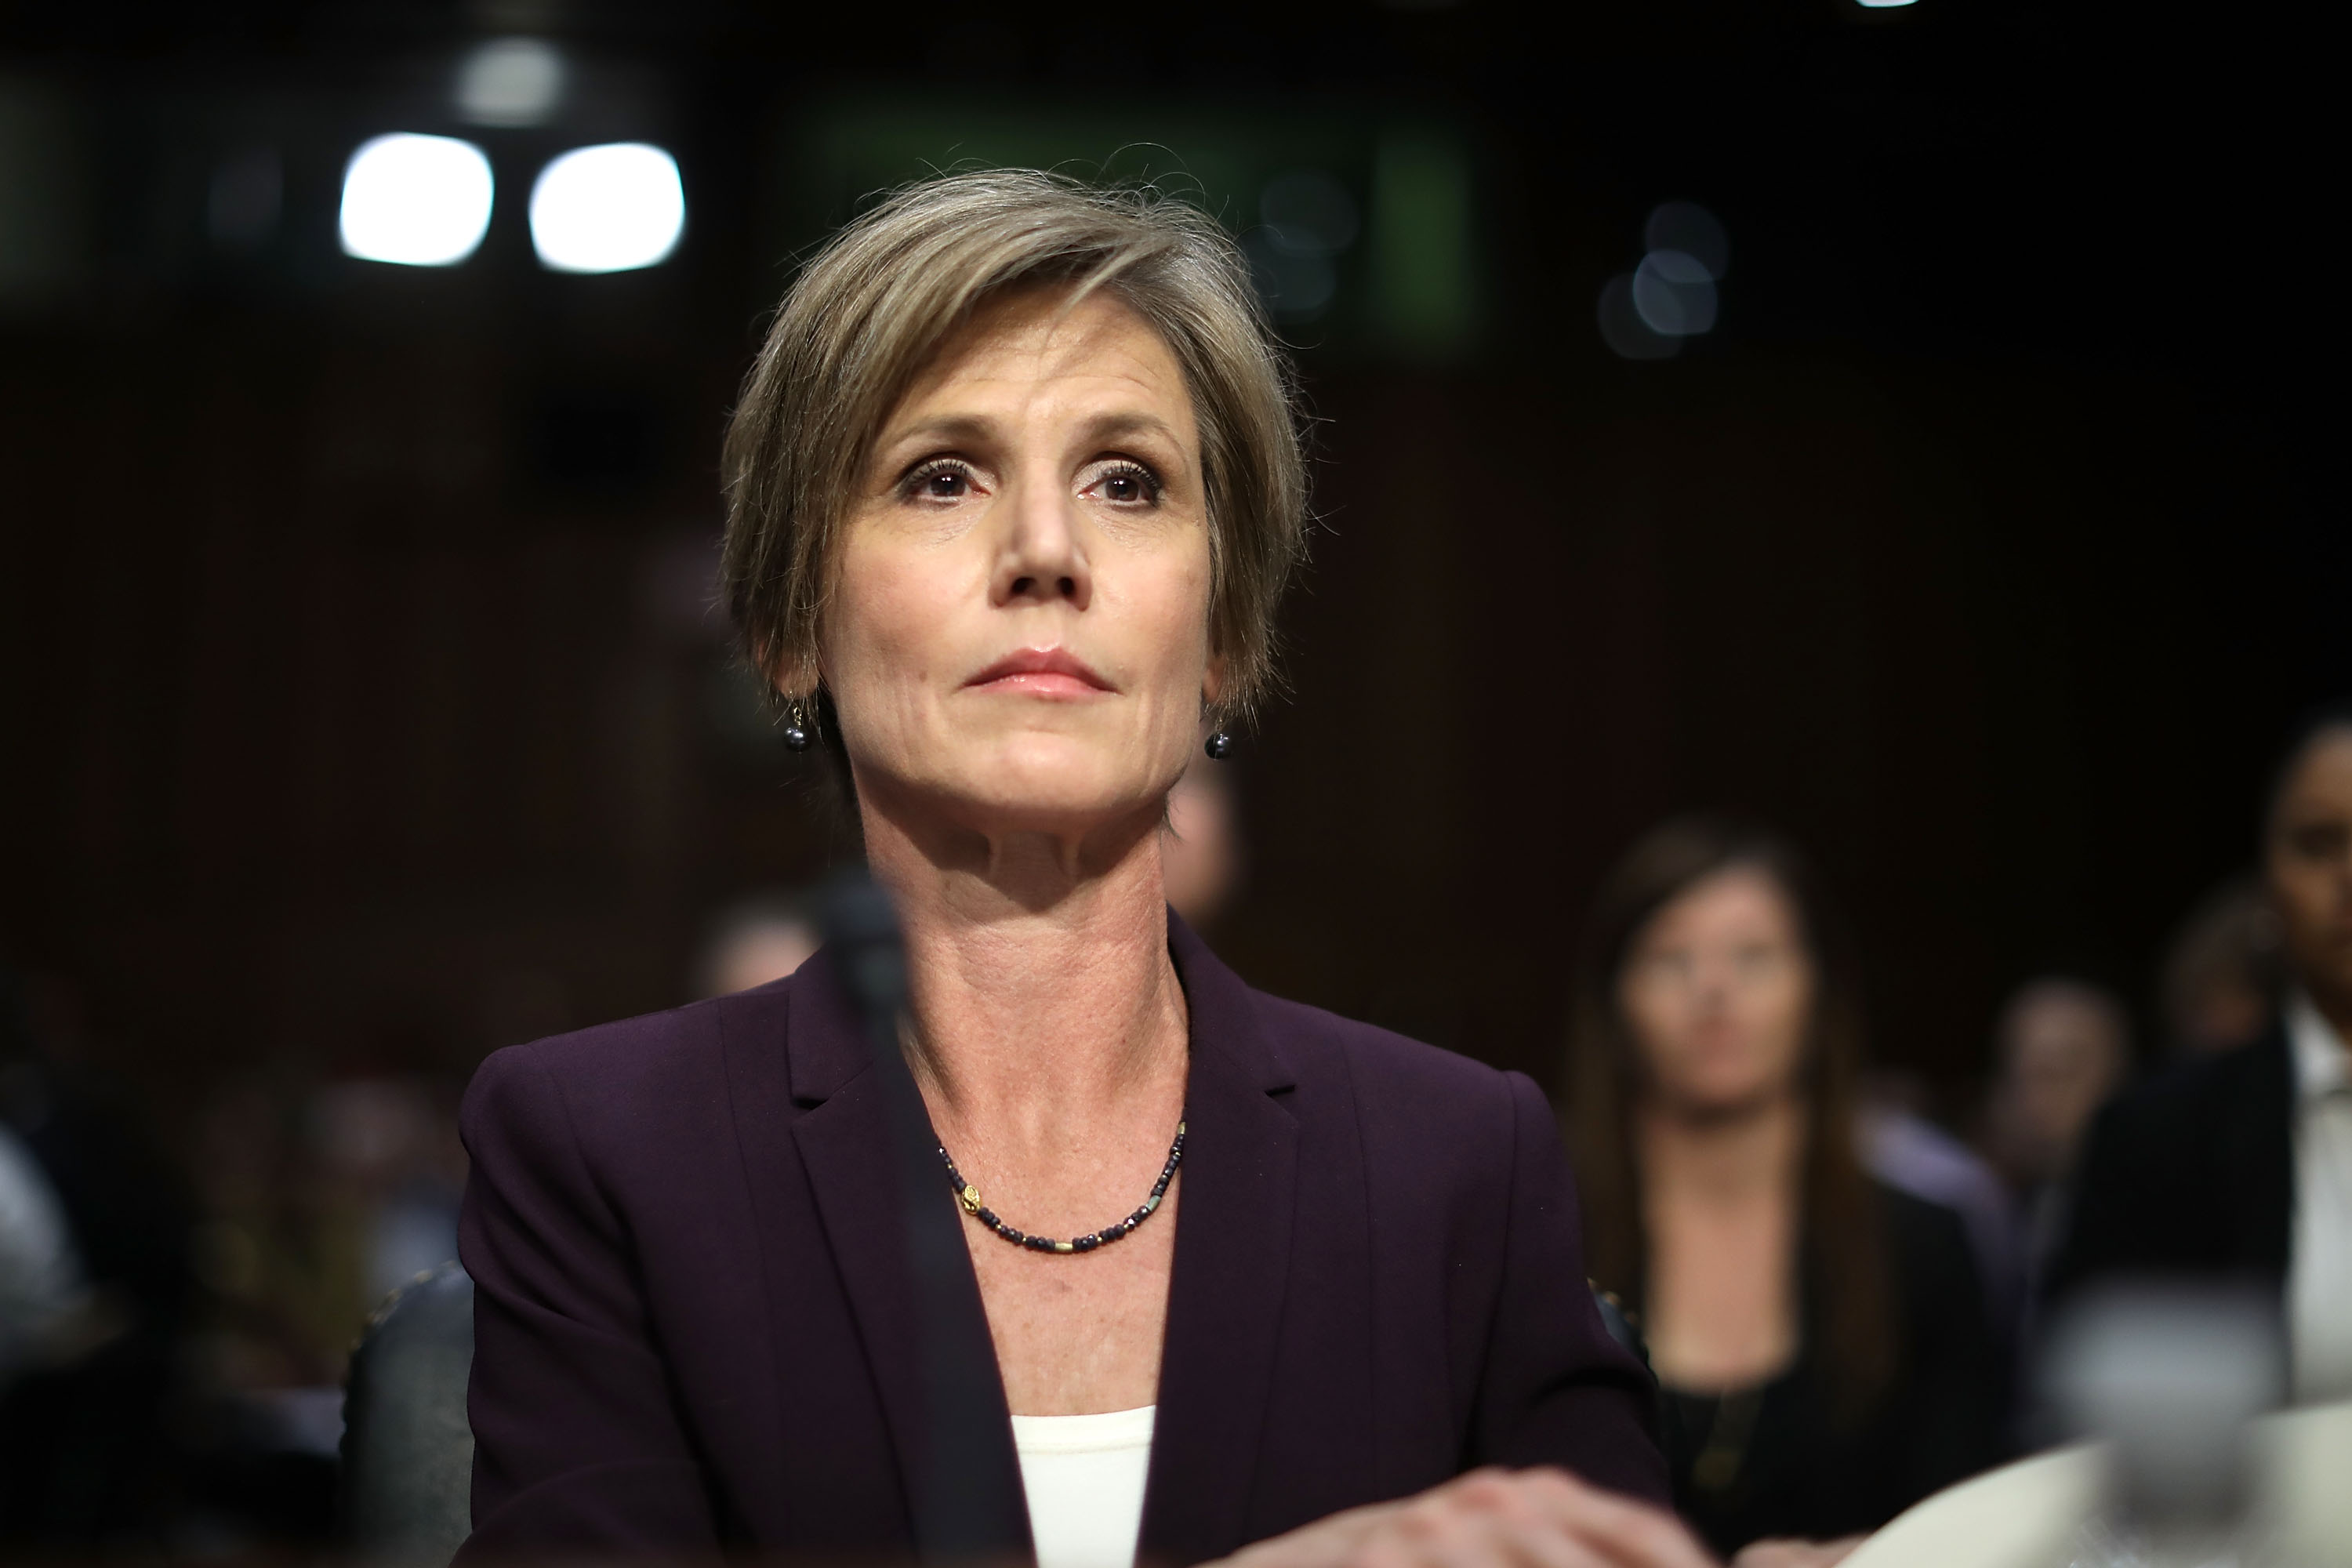 Ex-acting AG Sally Yates defends FBI investigation into Flynn, calls Barr move to drop charges 'highly irregular'